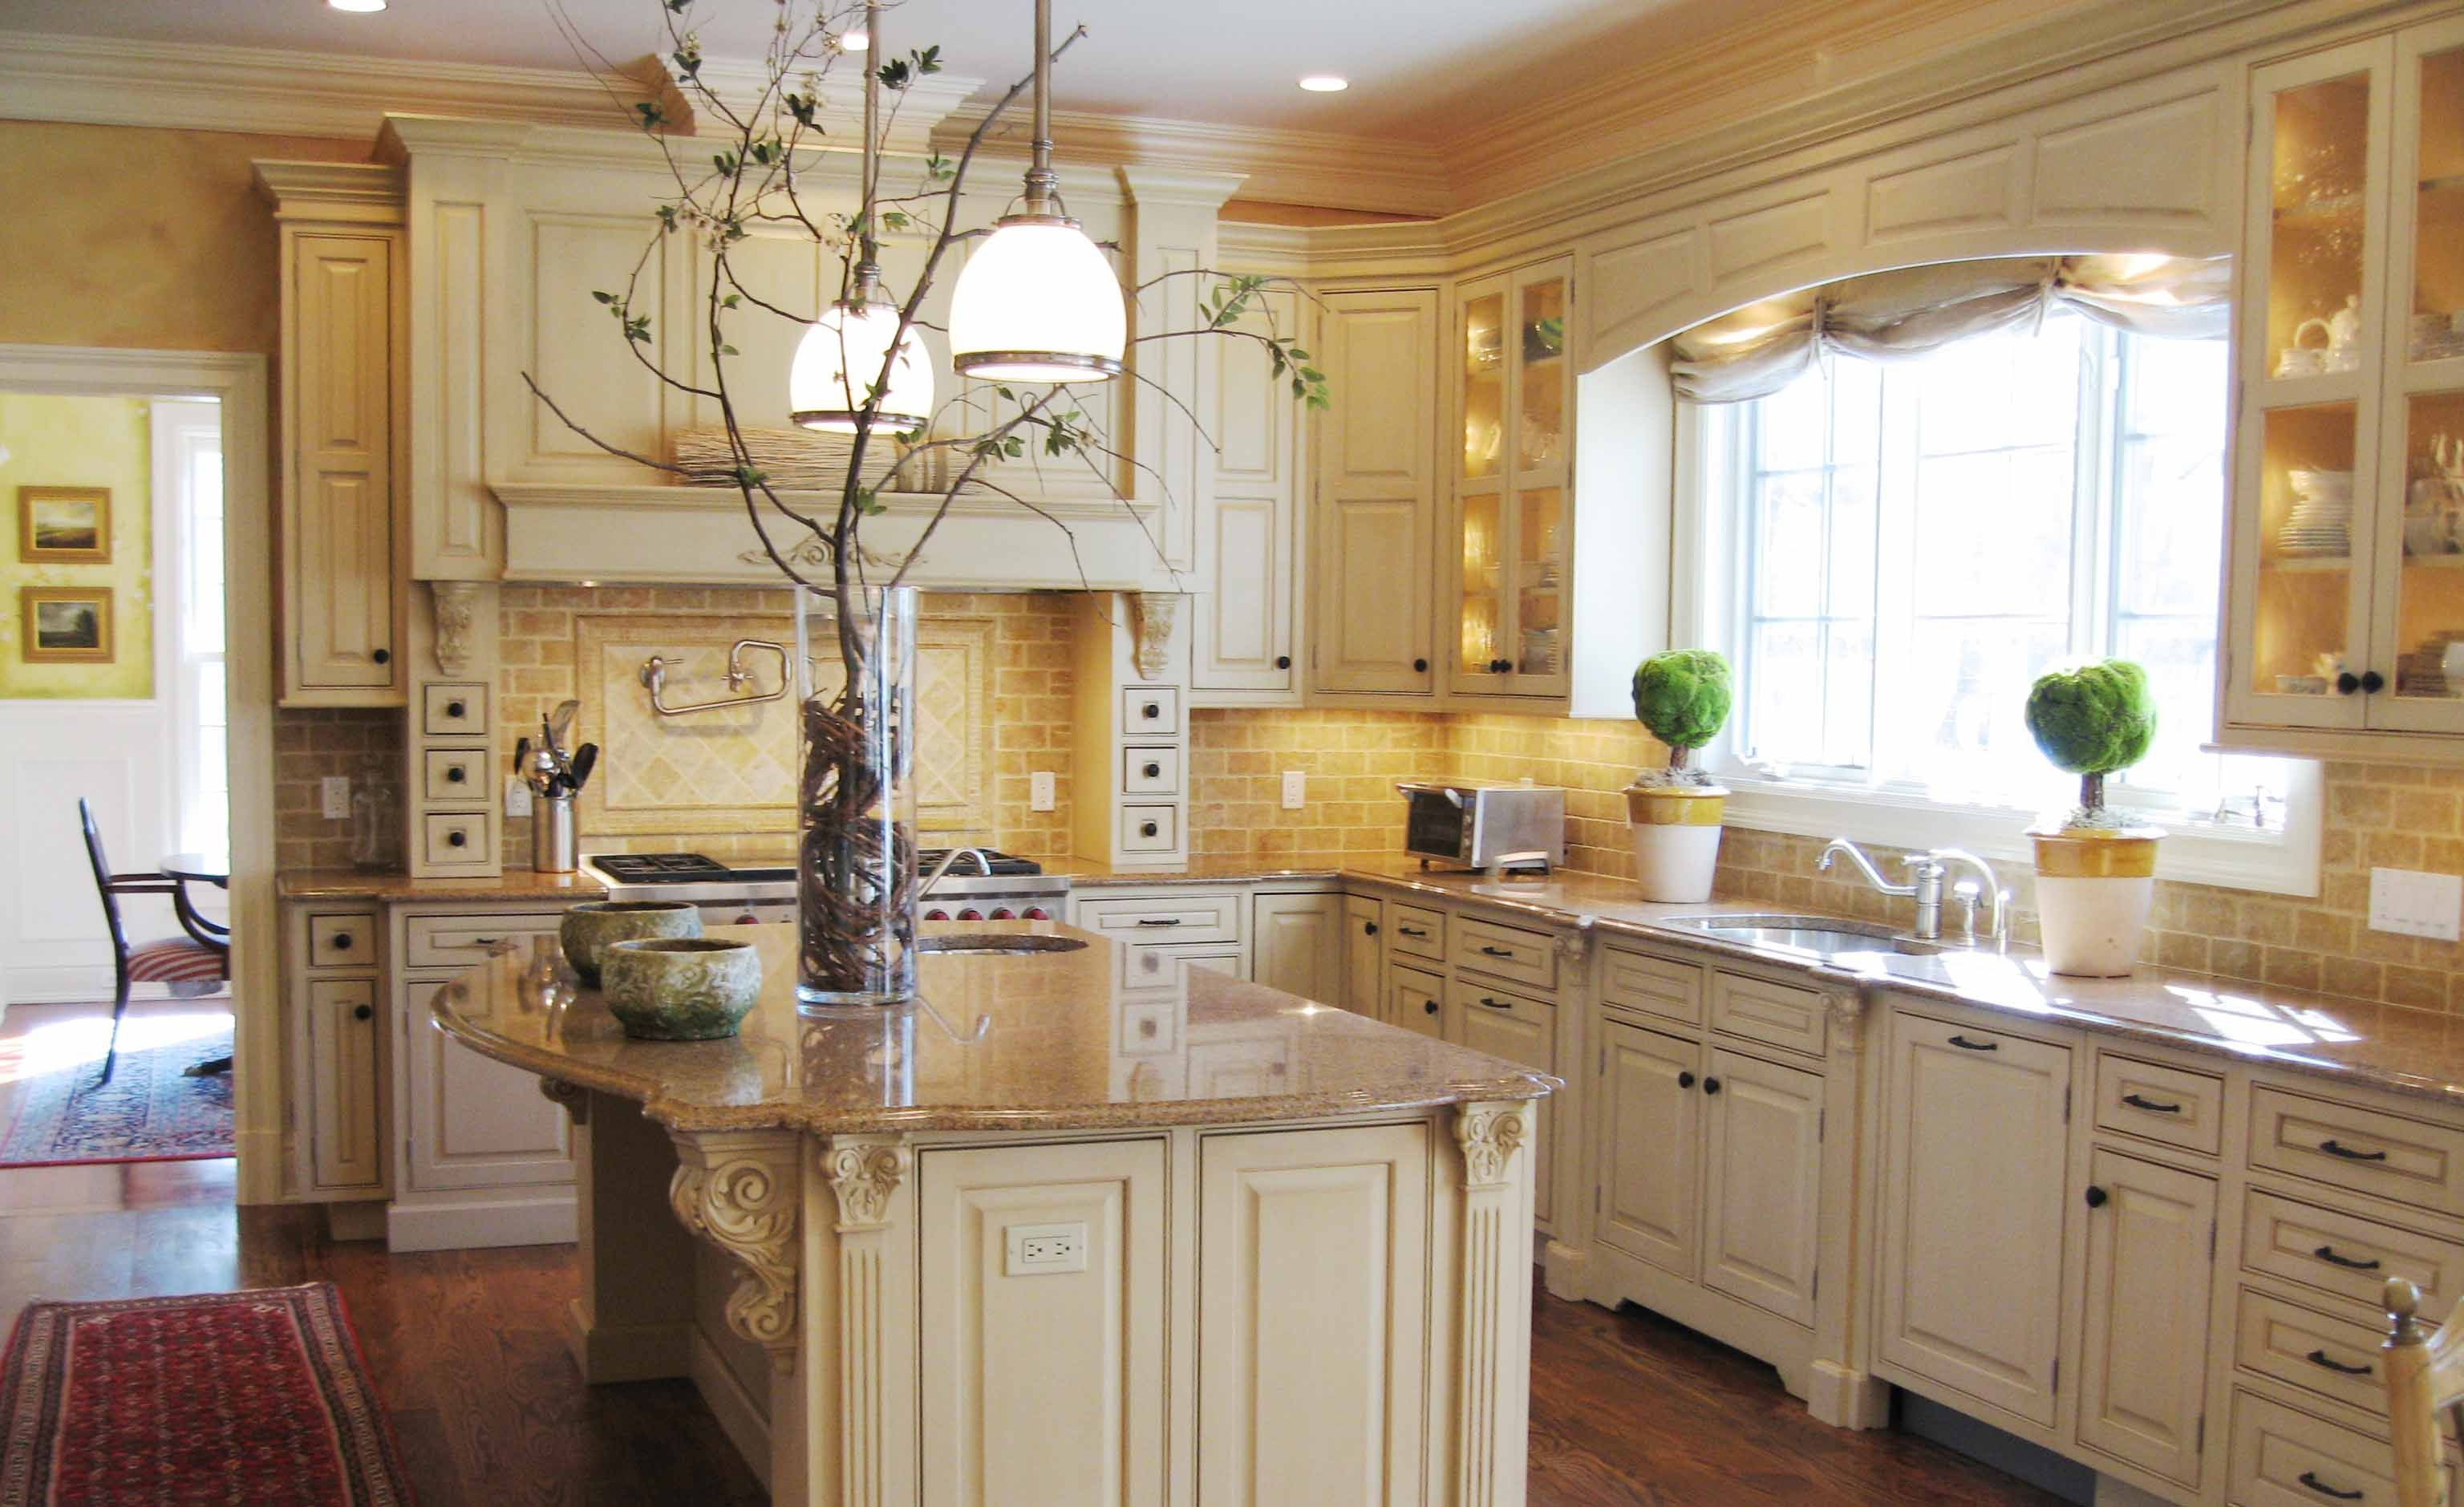 Cream And Gold Tuscan Kitchen Beautiful Styling Love The Topiarys In Pots There S That White Combo Tuscany Design